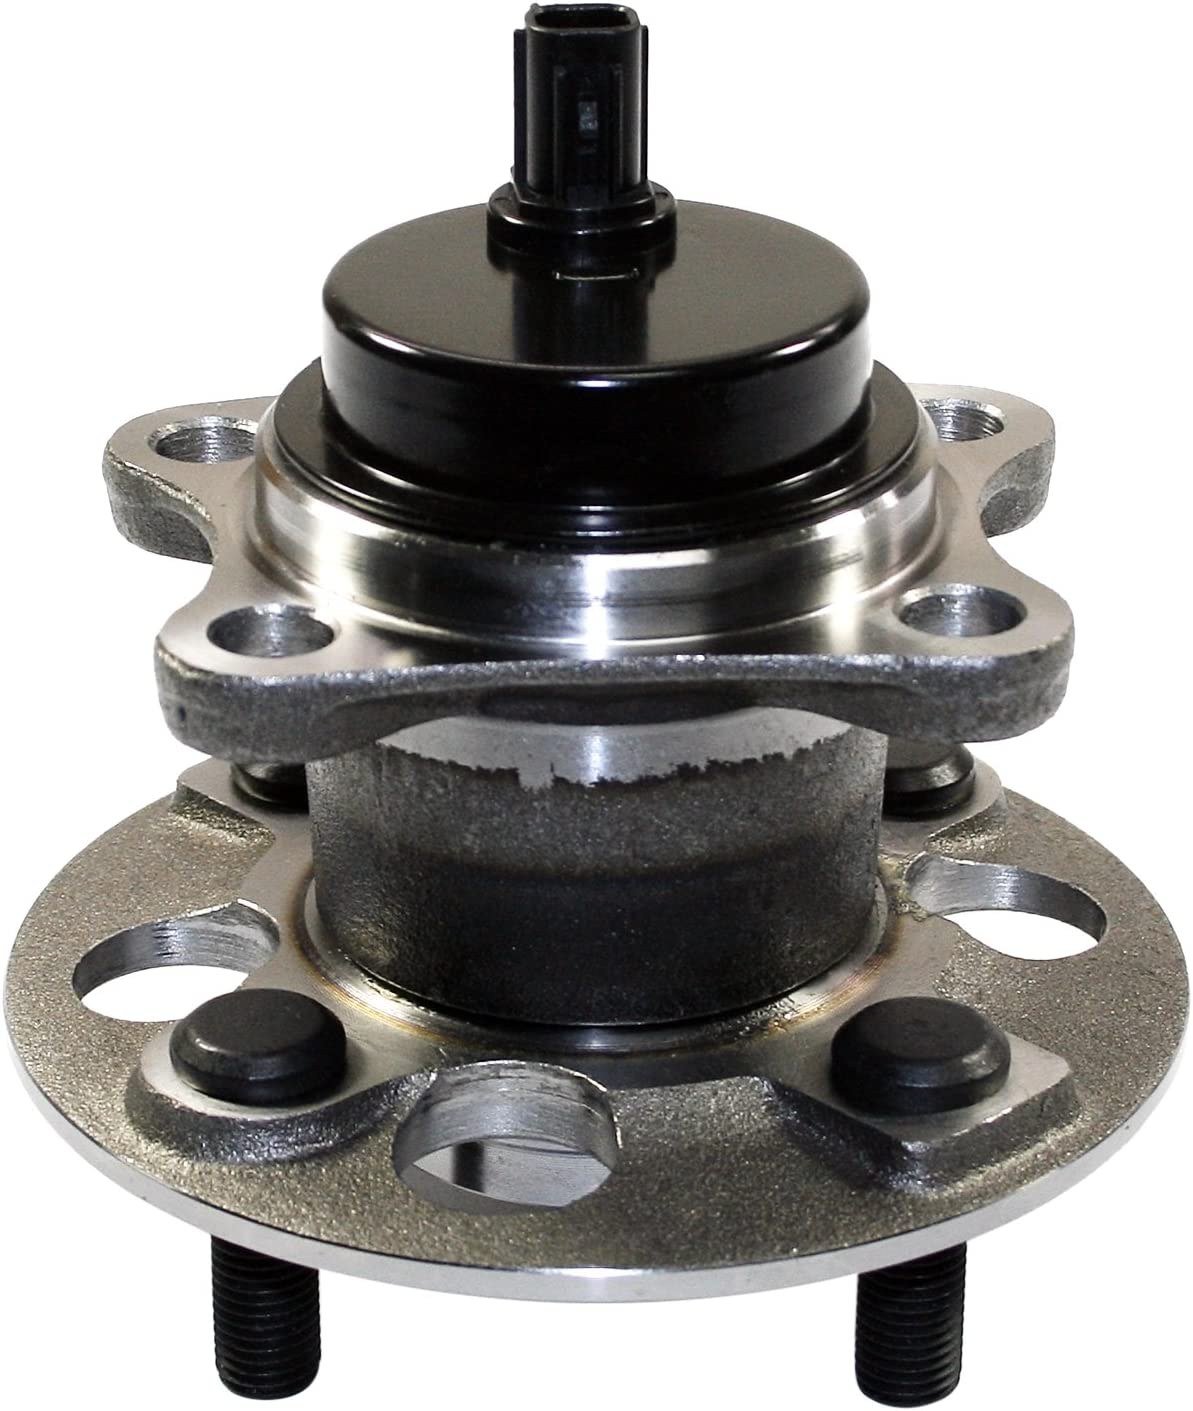 Max 63% OFF DuraGo 29512370 Rear Direct store Hub Assembly